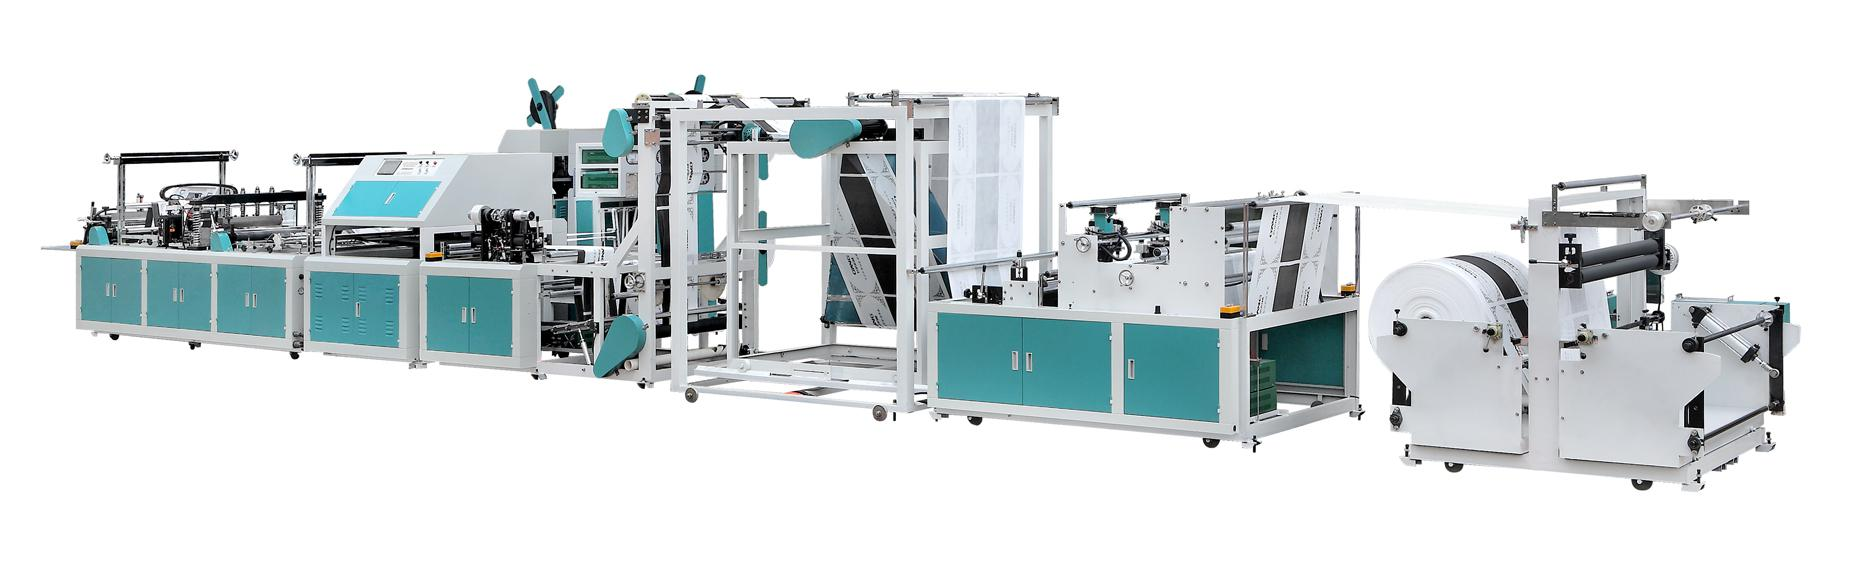 Pp Automatic Non Woven Bag Making Machines Carry Bag Machine For